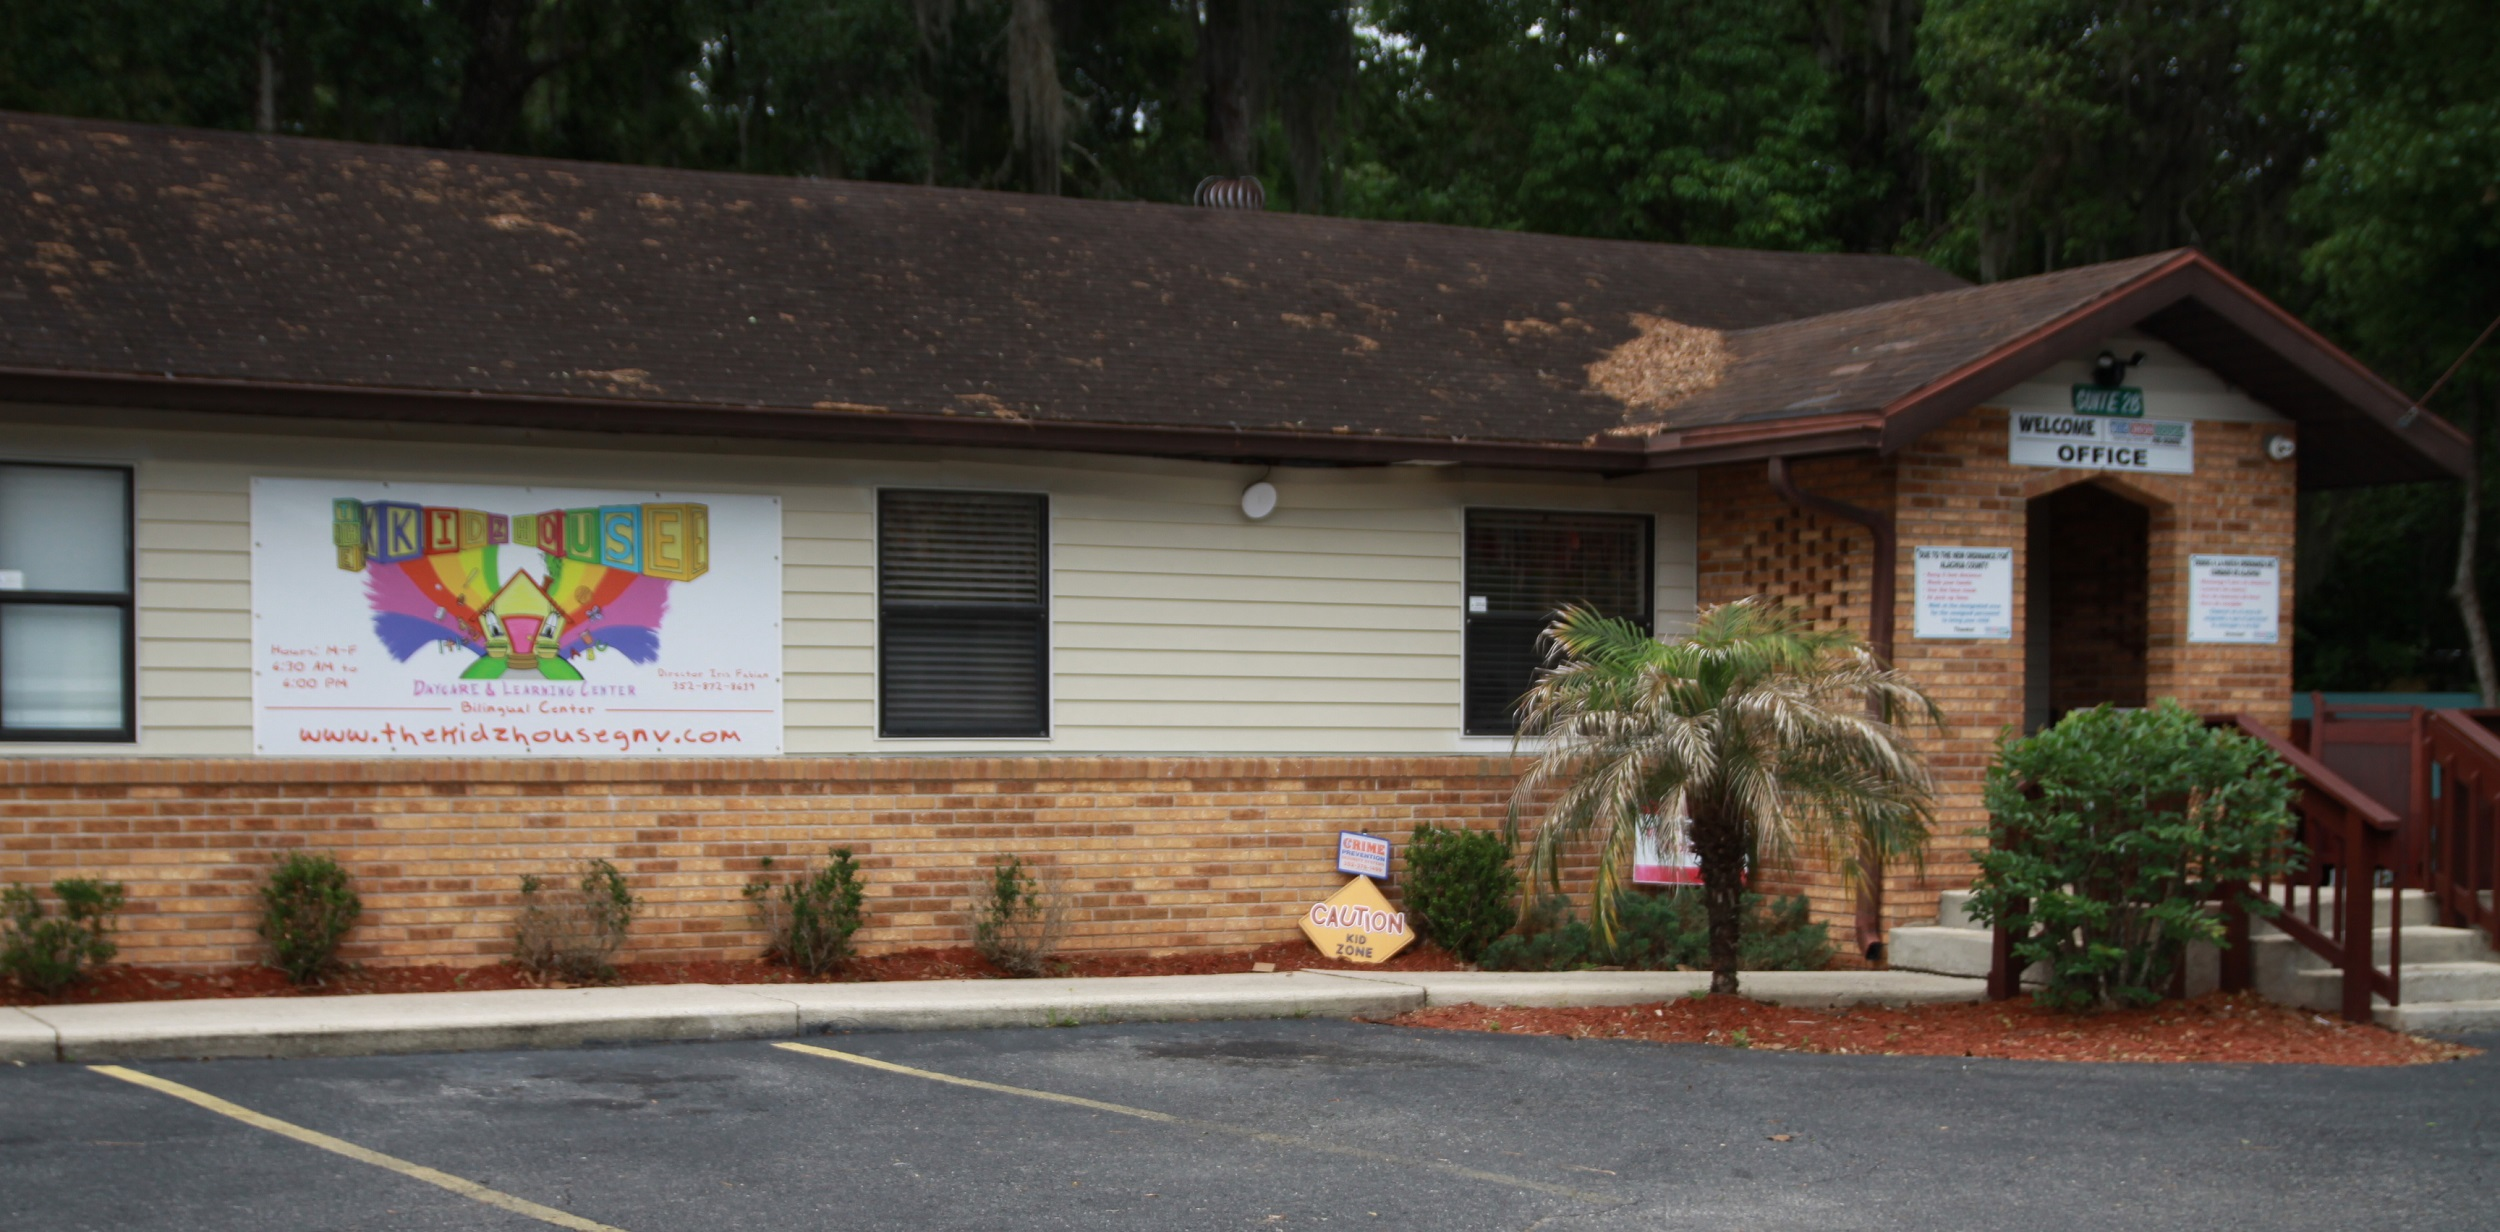 The Kidz House Infant and Toddler Building